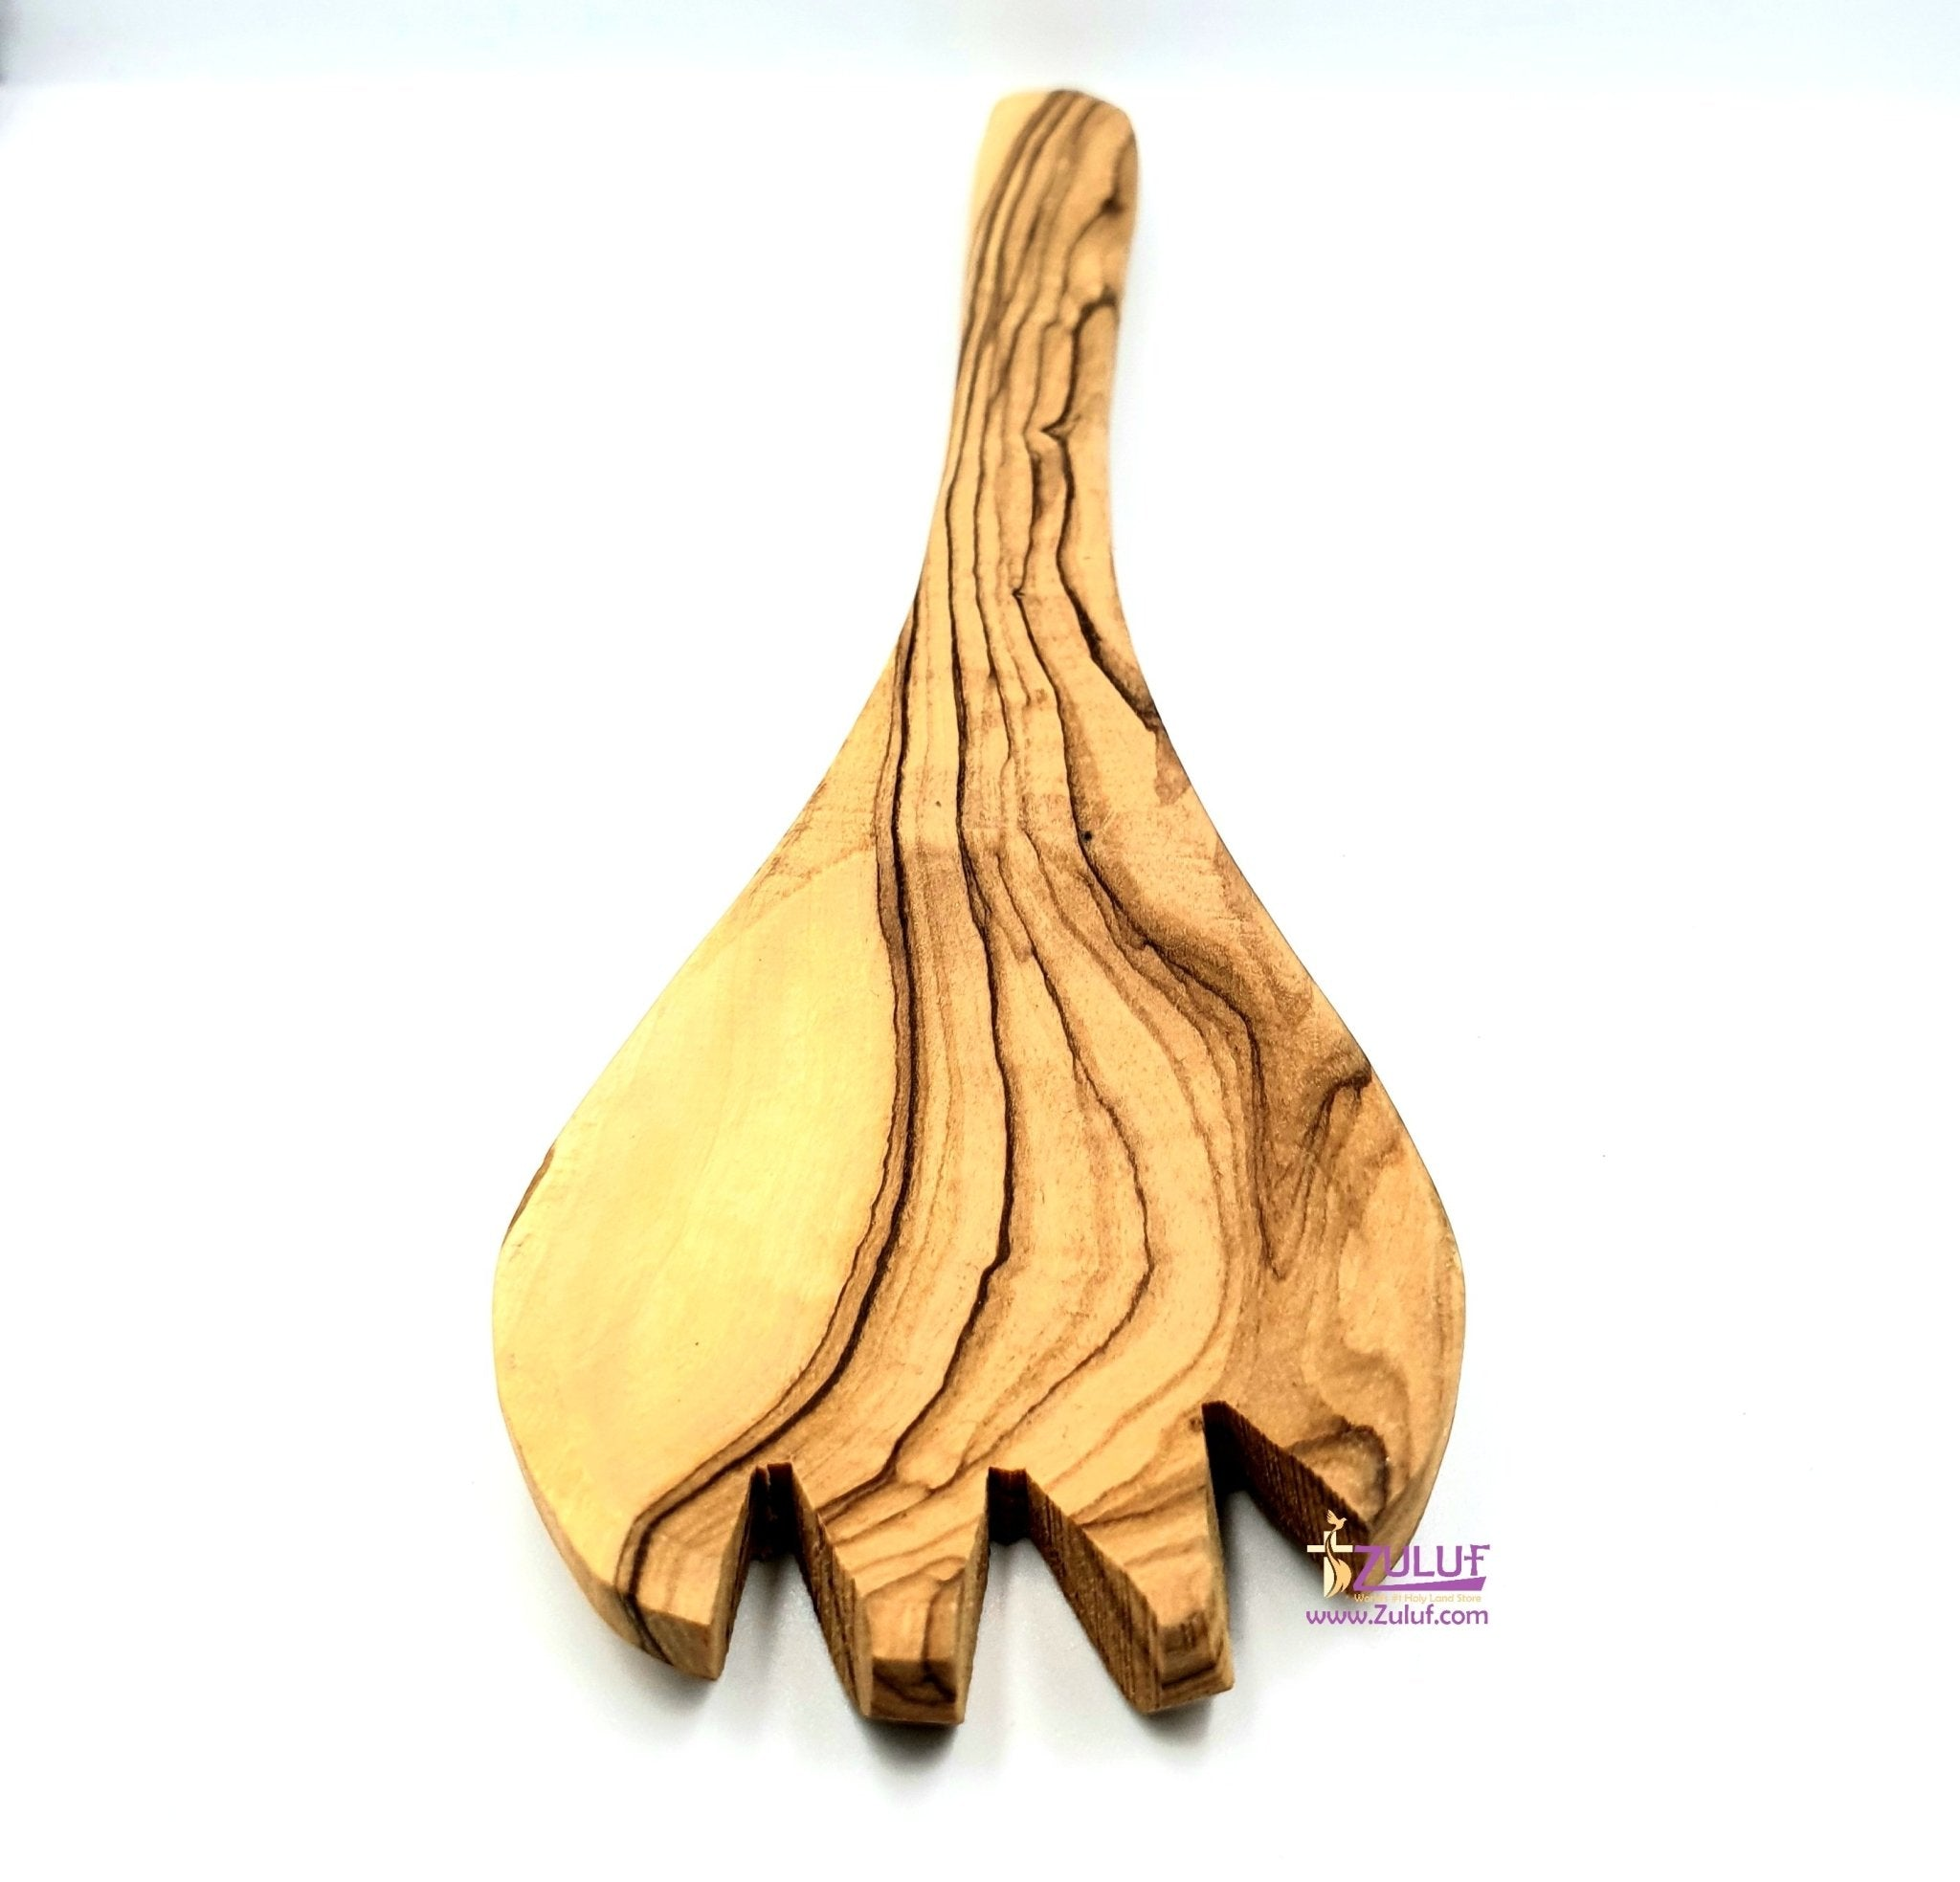 Olive wood hand made forg KIT003 - Zuluf